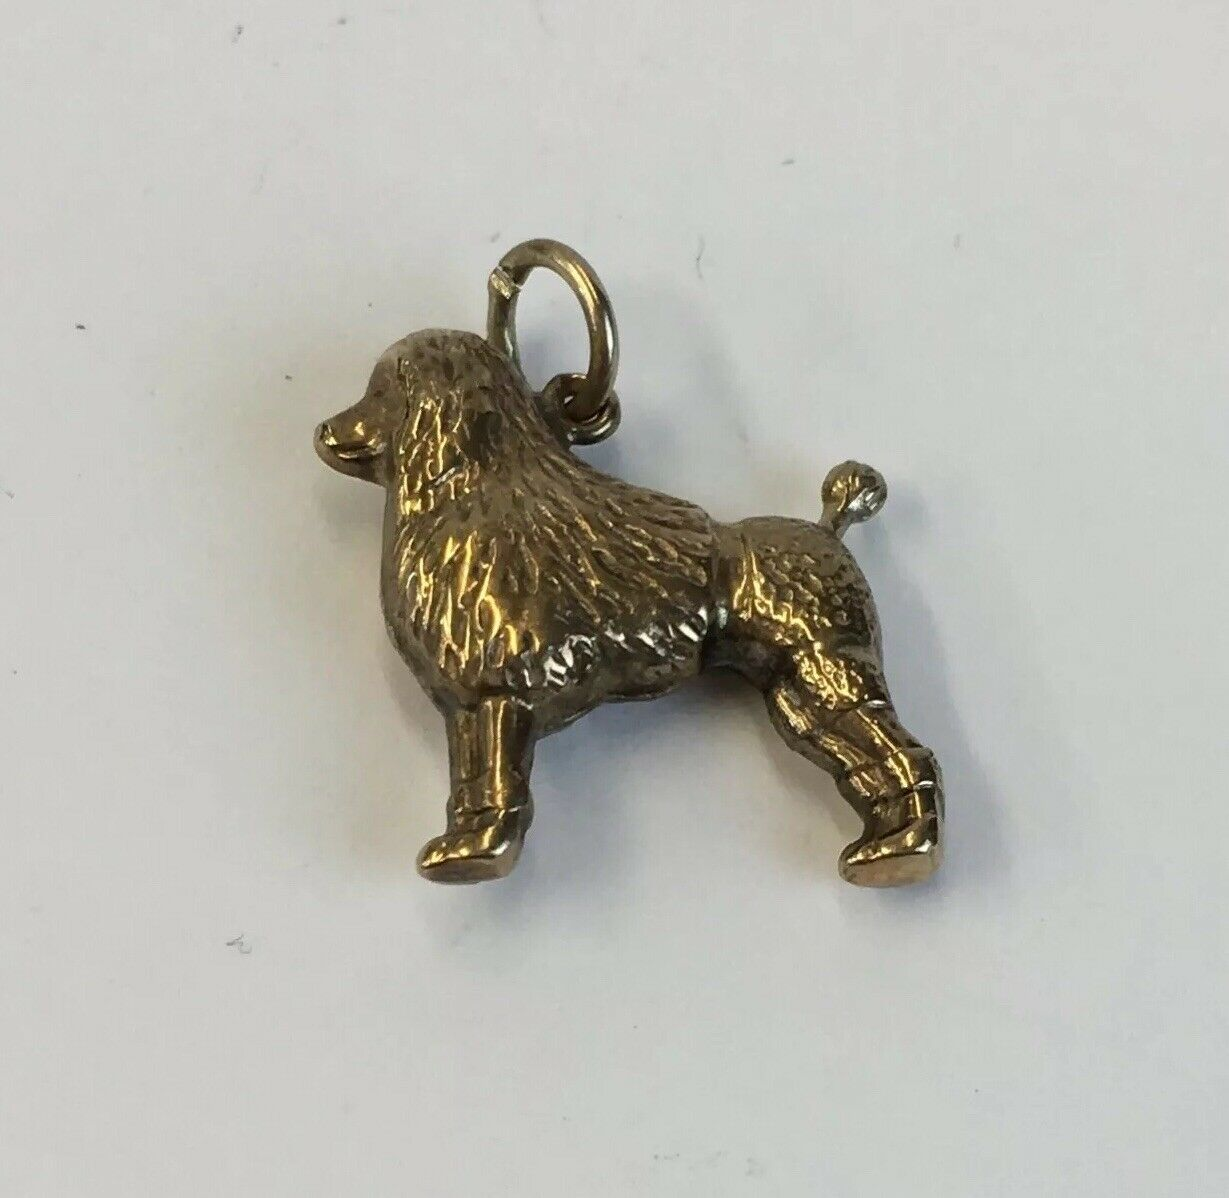 Vintage 1975 9ct Yellow gold Poodle Charm 15mm In Length 0.9g